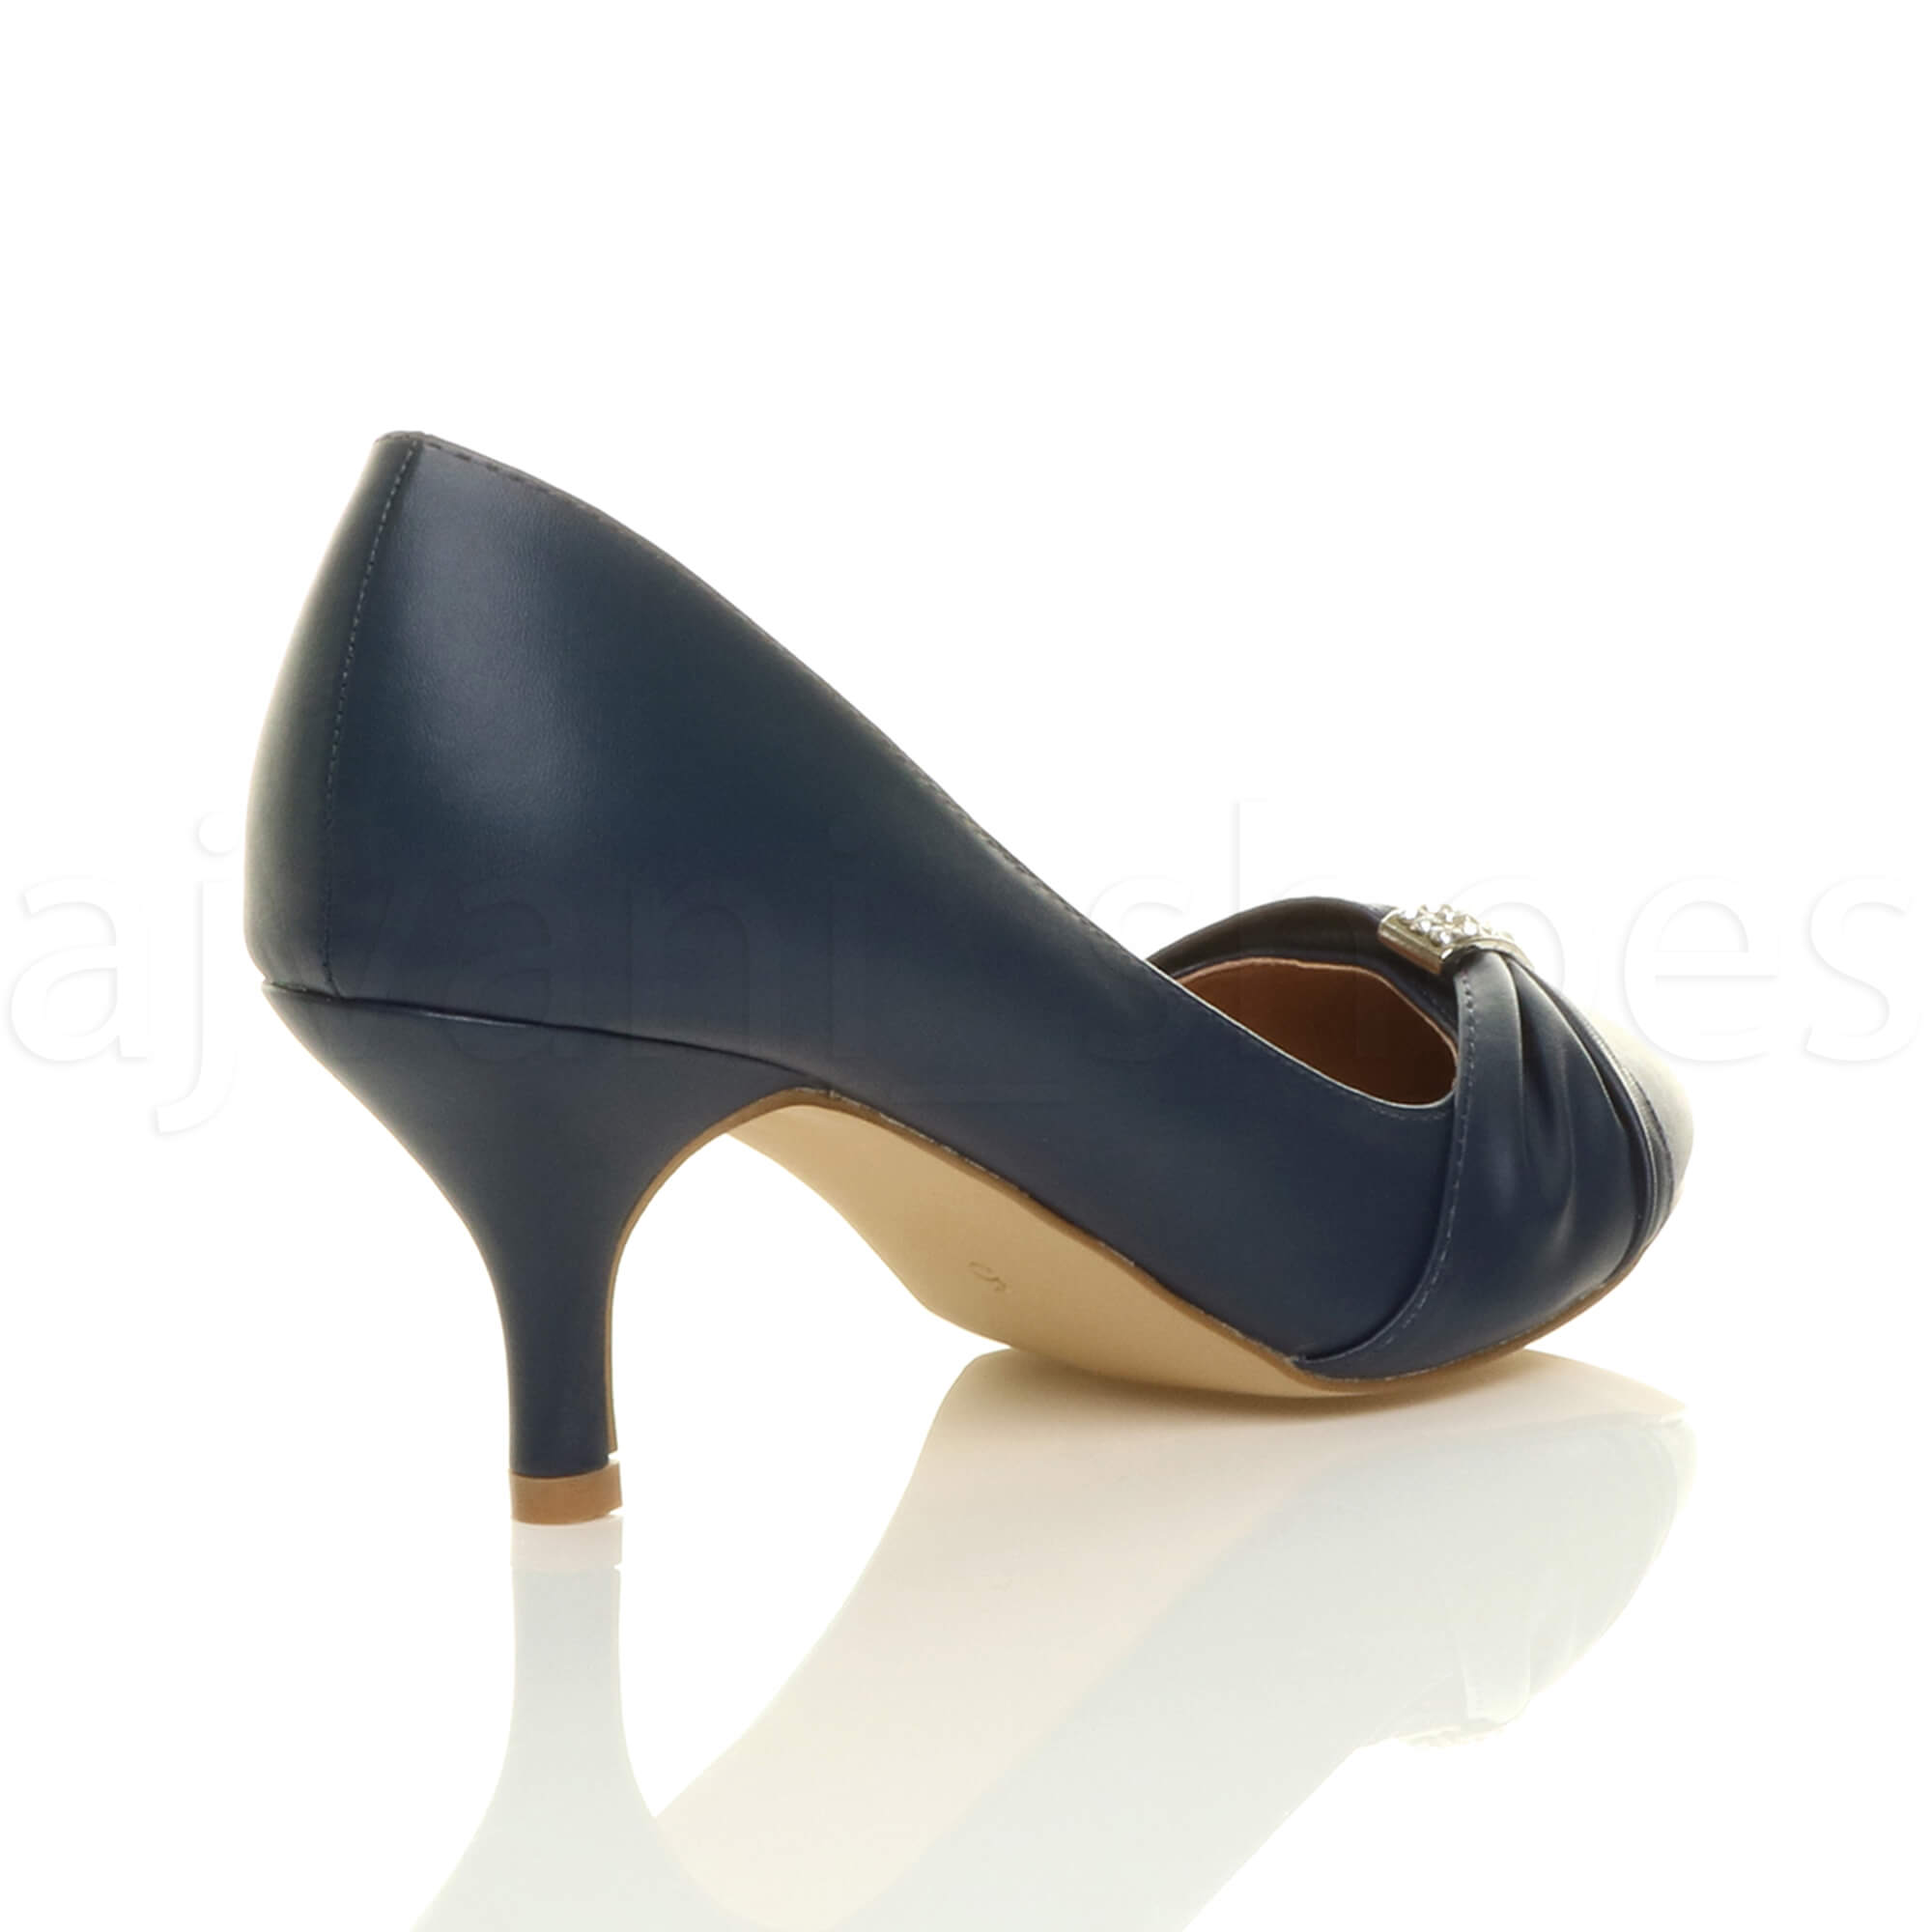 WOMENS-LADIES-MID-HEEL-RUCHED-DIAMANTE-WEDDING-PROM-EVENING-COURT-SHOES-SIZE thumbnail 45